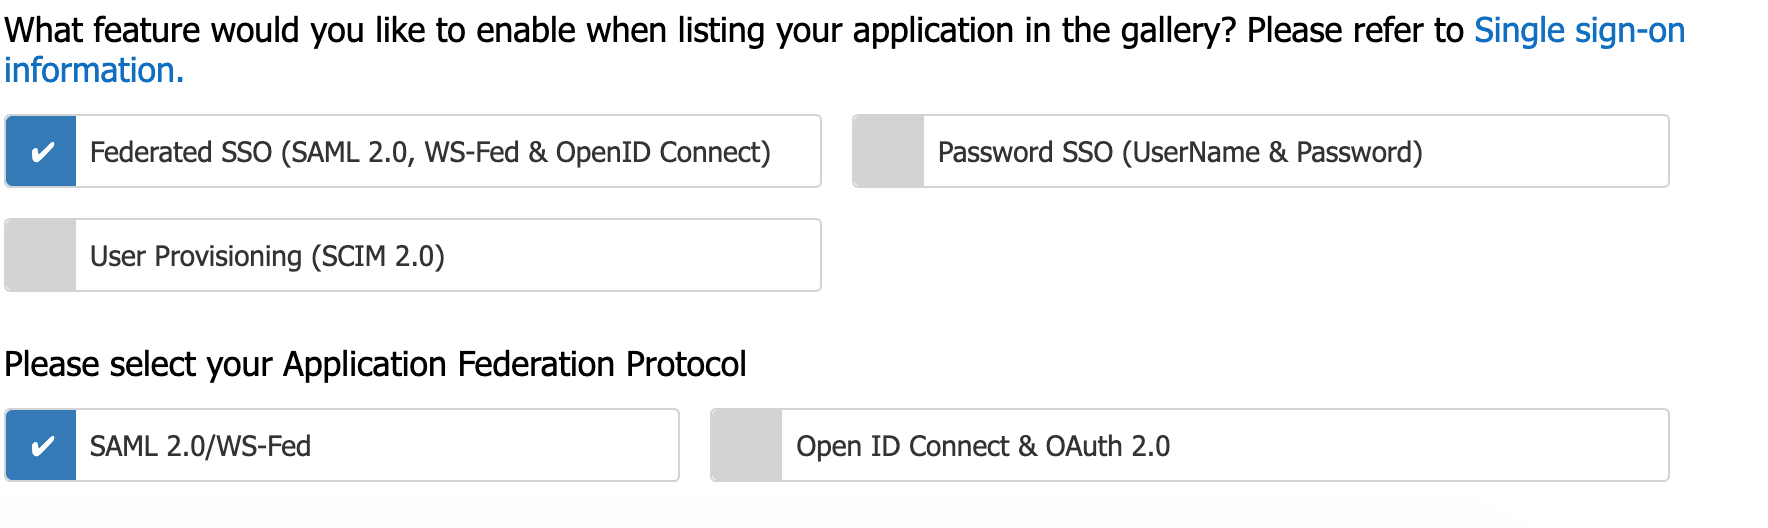 Microsoft Application Network application form